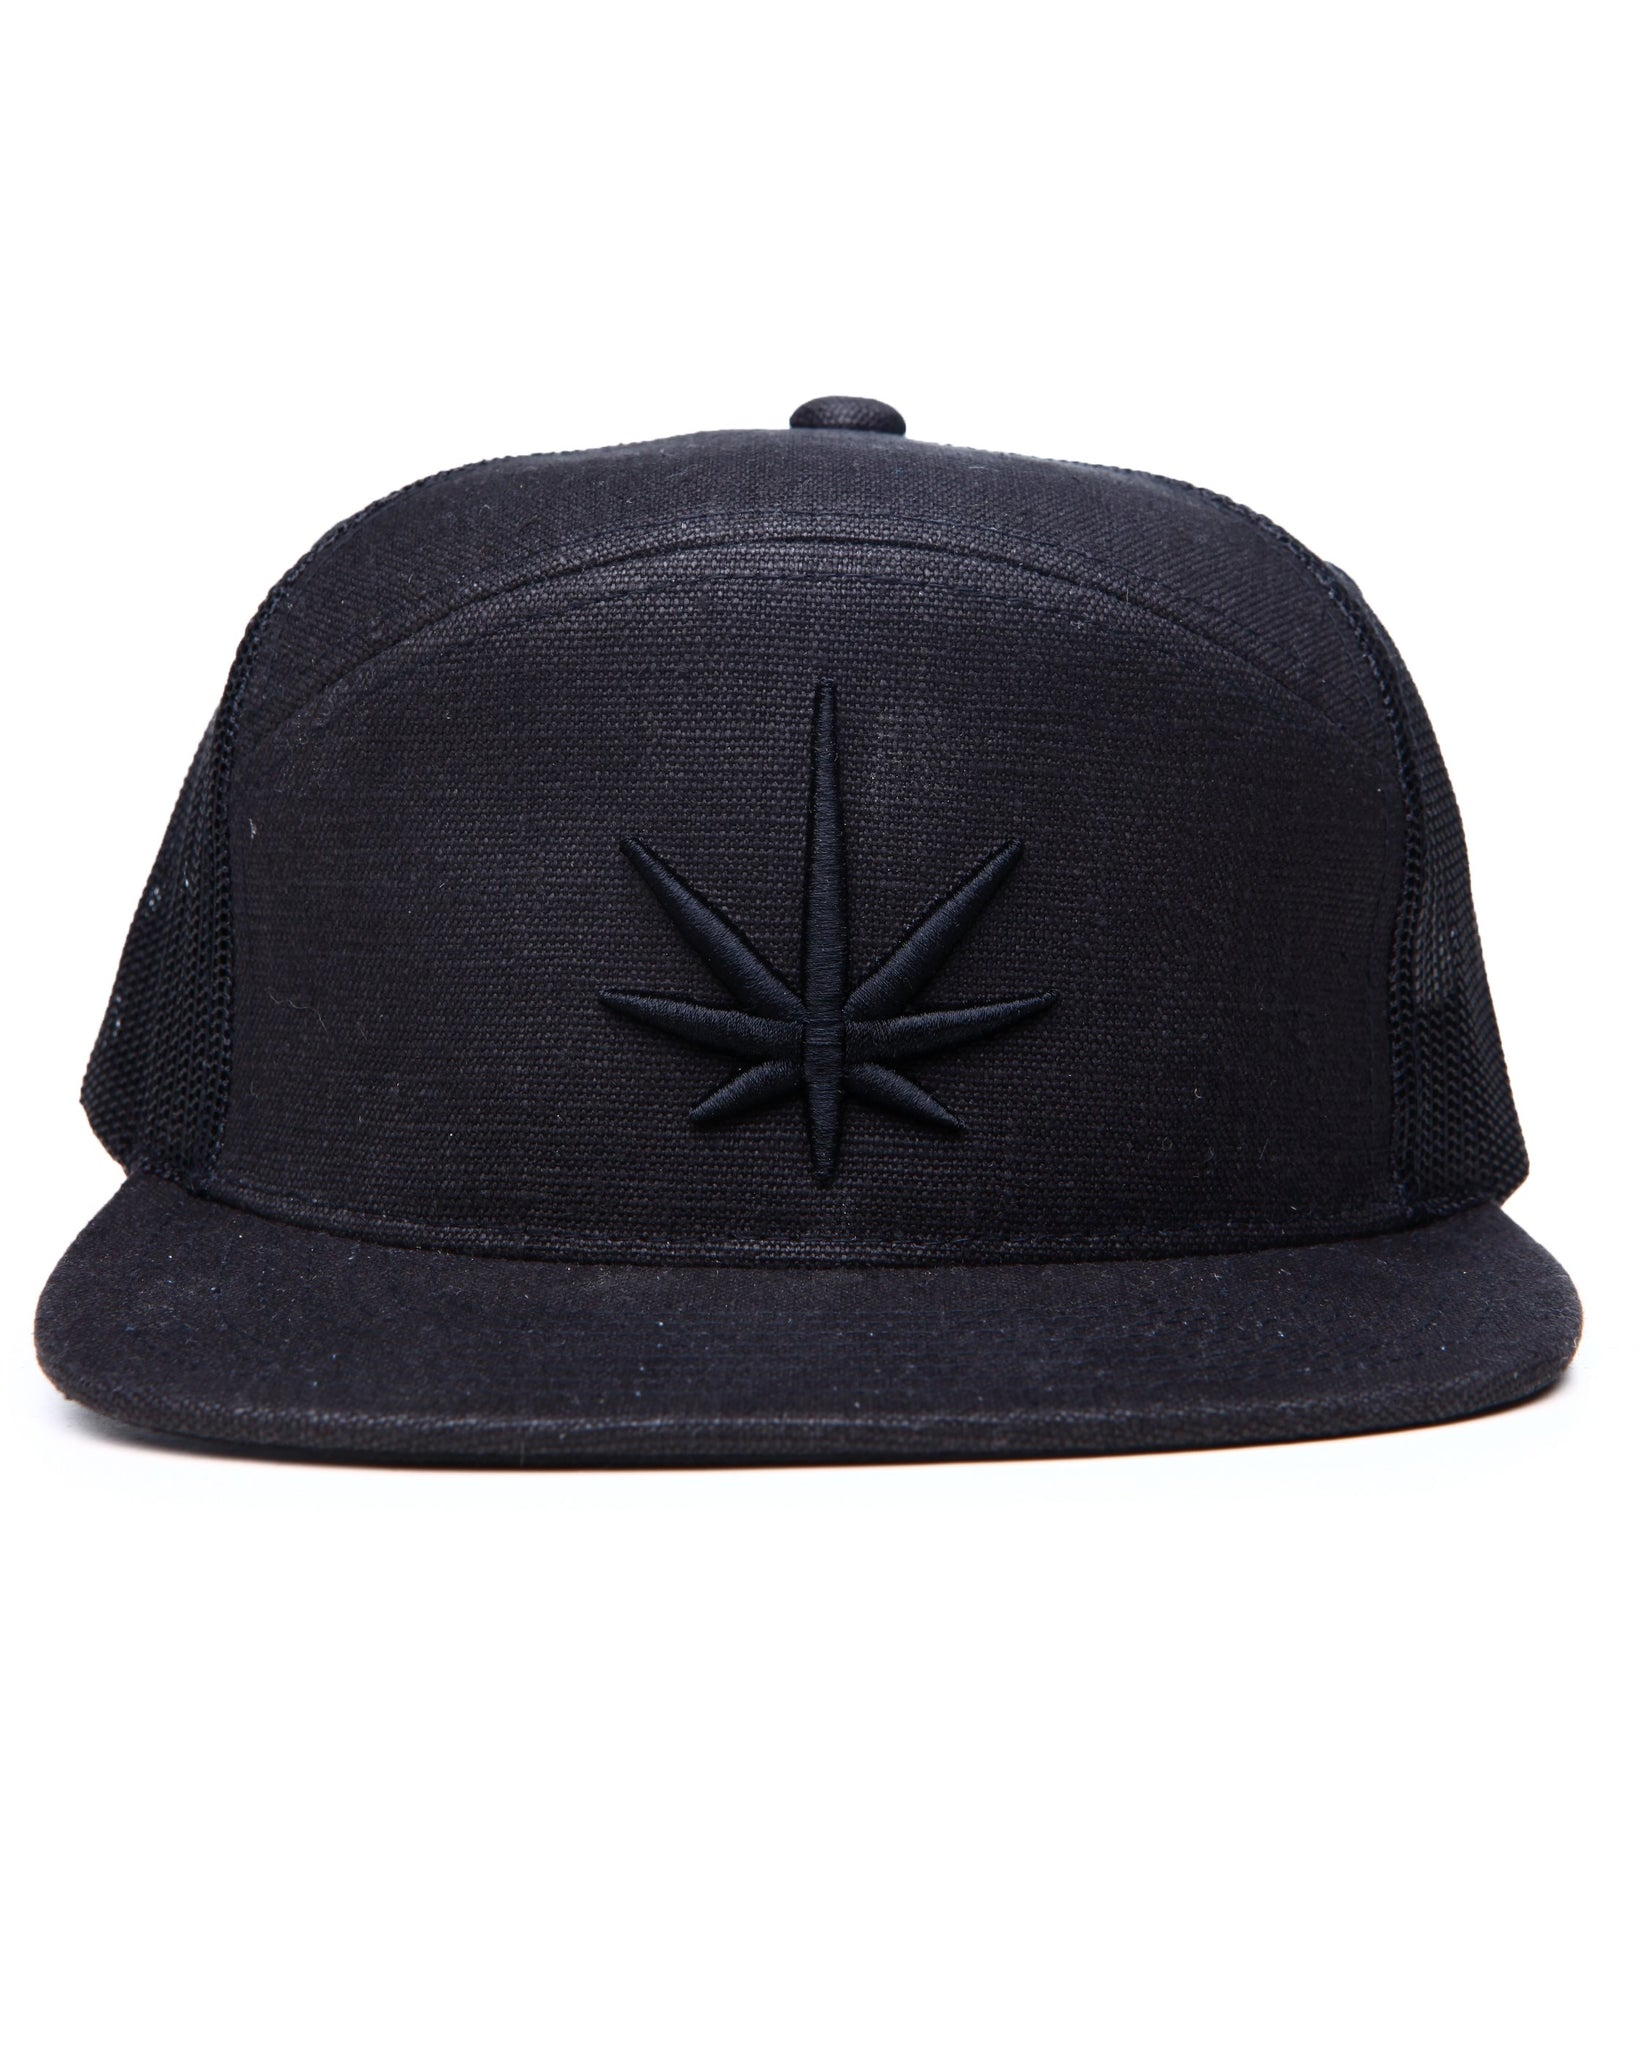 HEMPZOO BLACK LEAF ARCH TRUCKER CAP - HEMPZOO Sustainable organic hemp cannabis clothing hats accessories